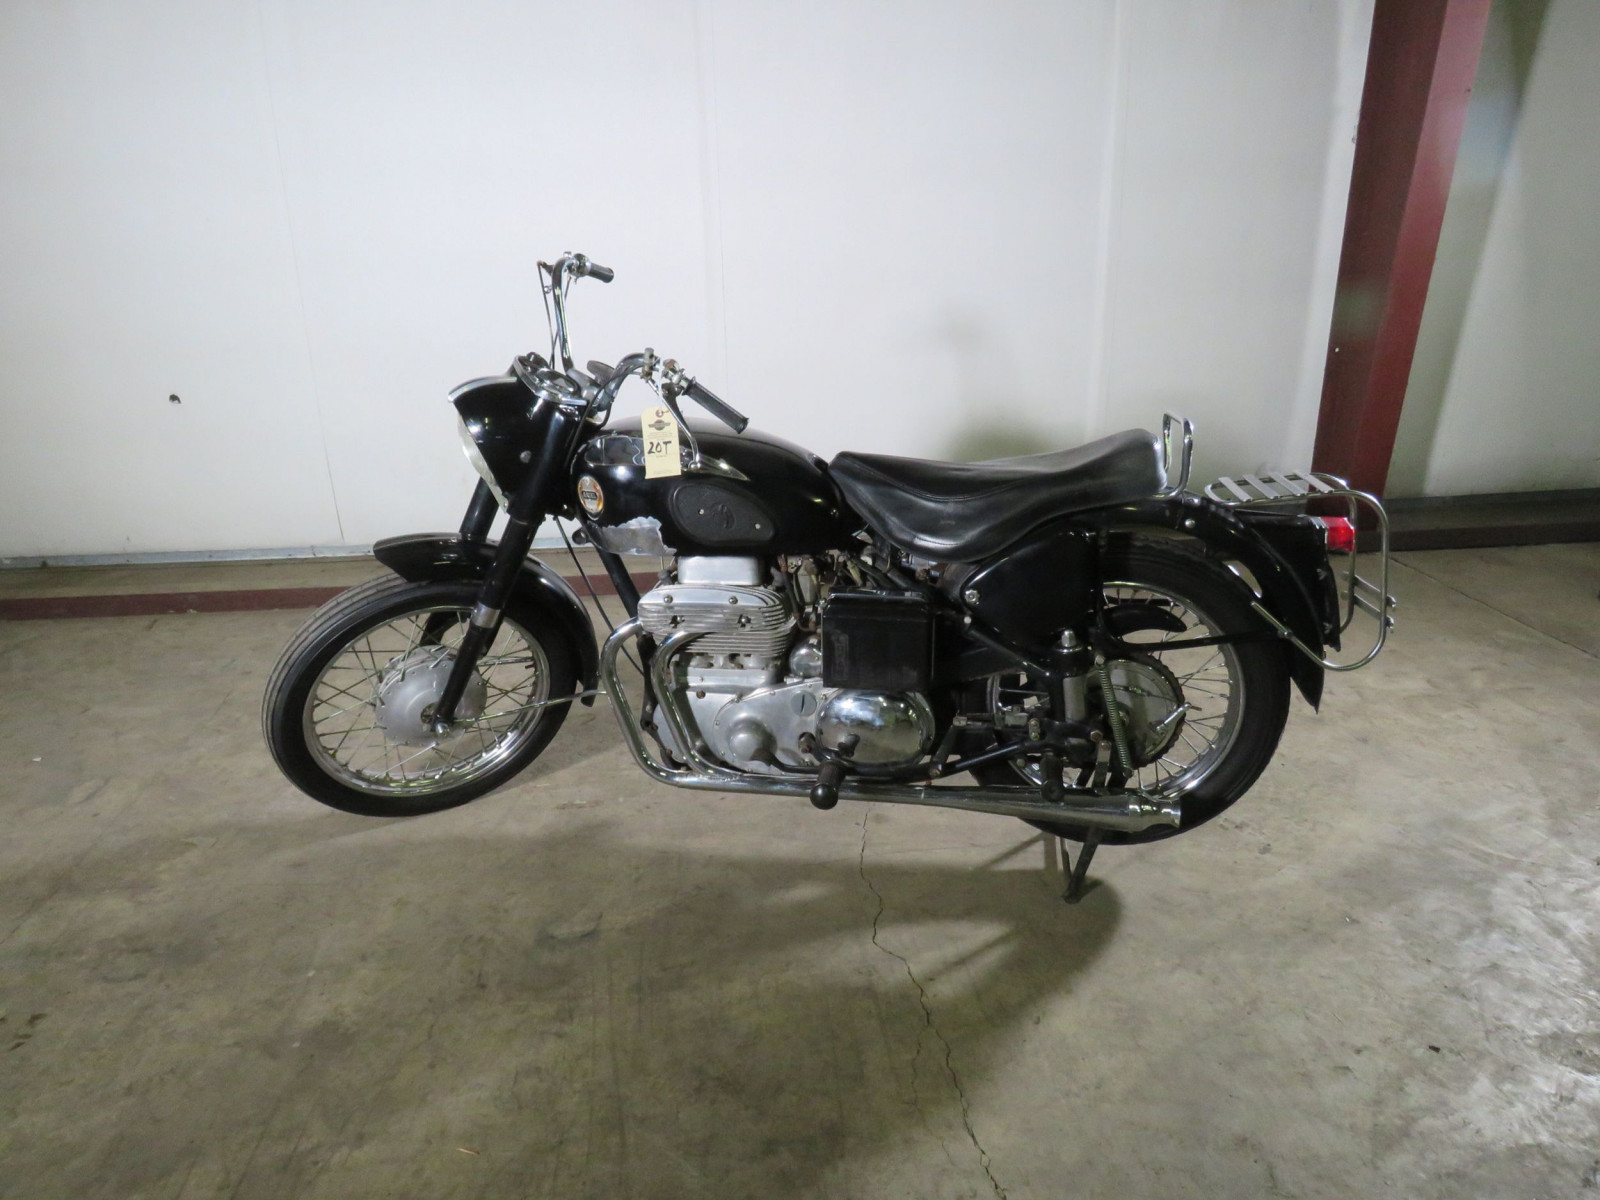 1957 Ariel Square Four Motorcycle - Image 1